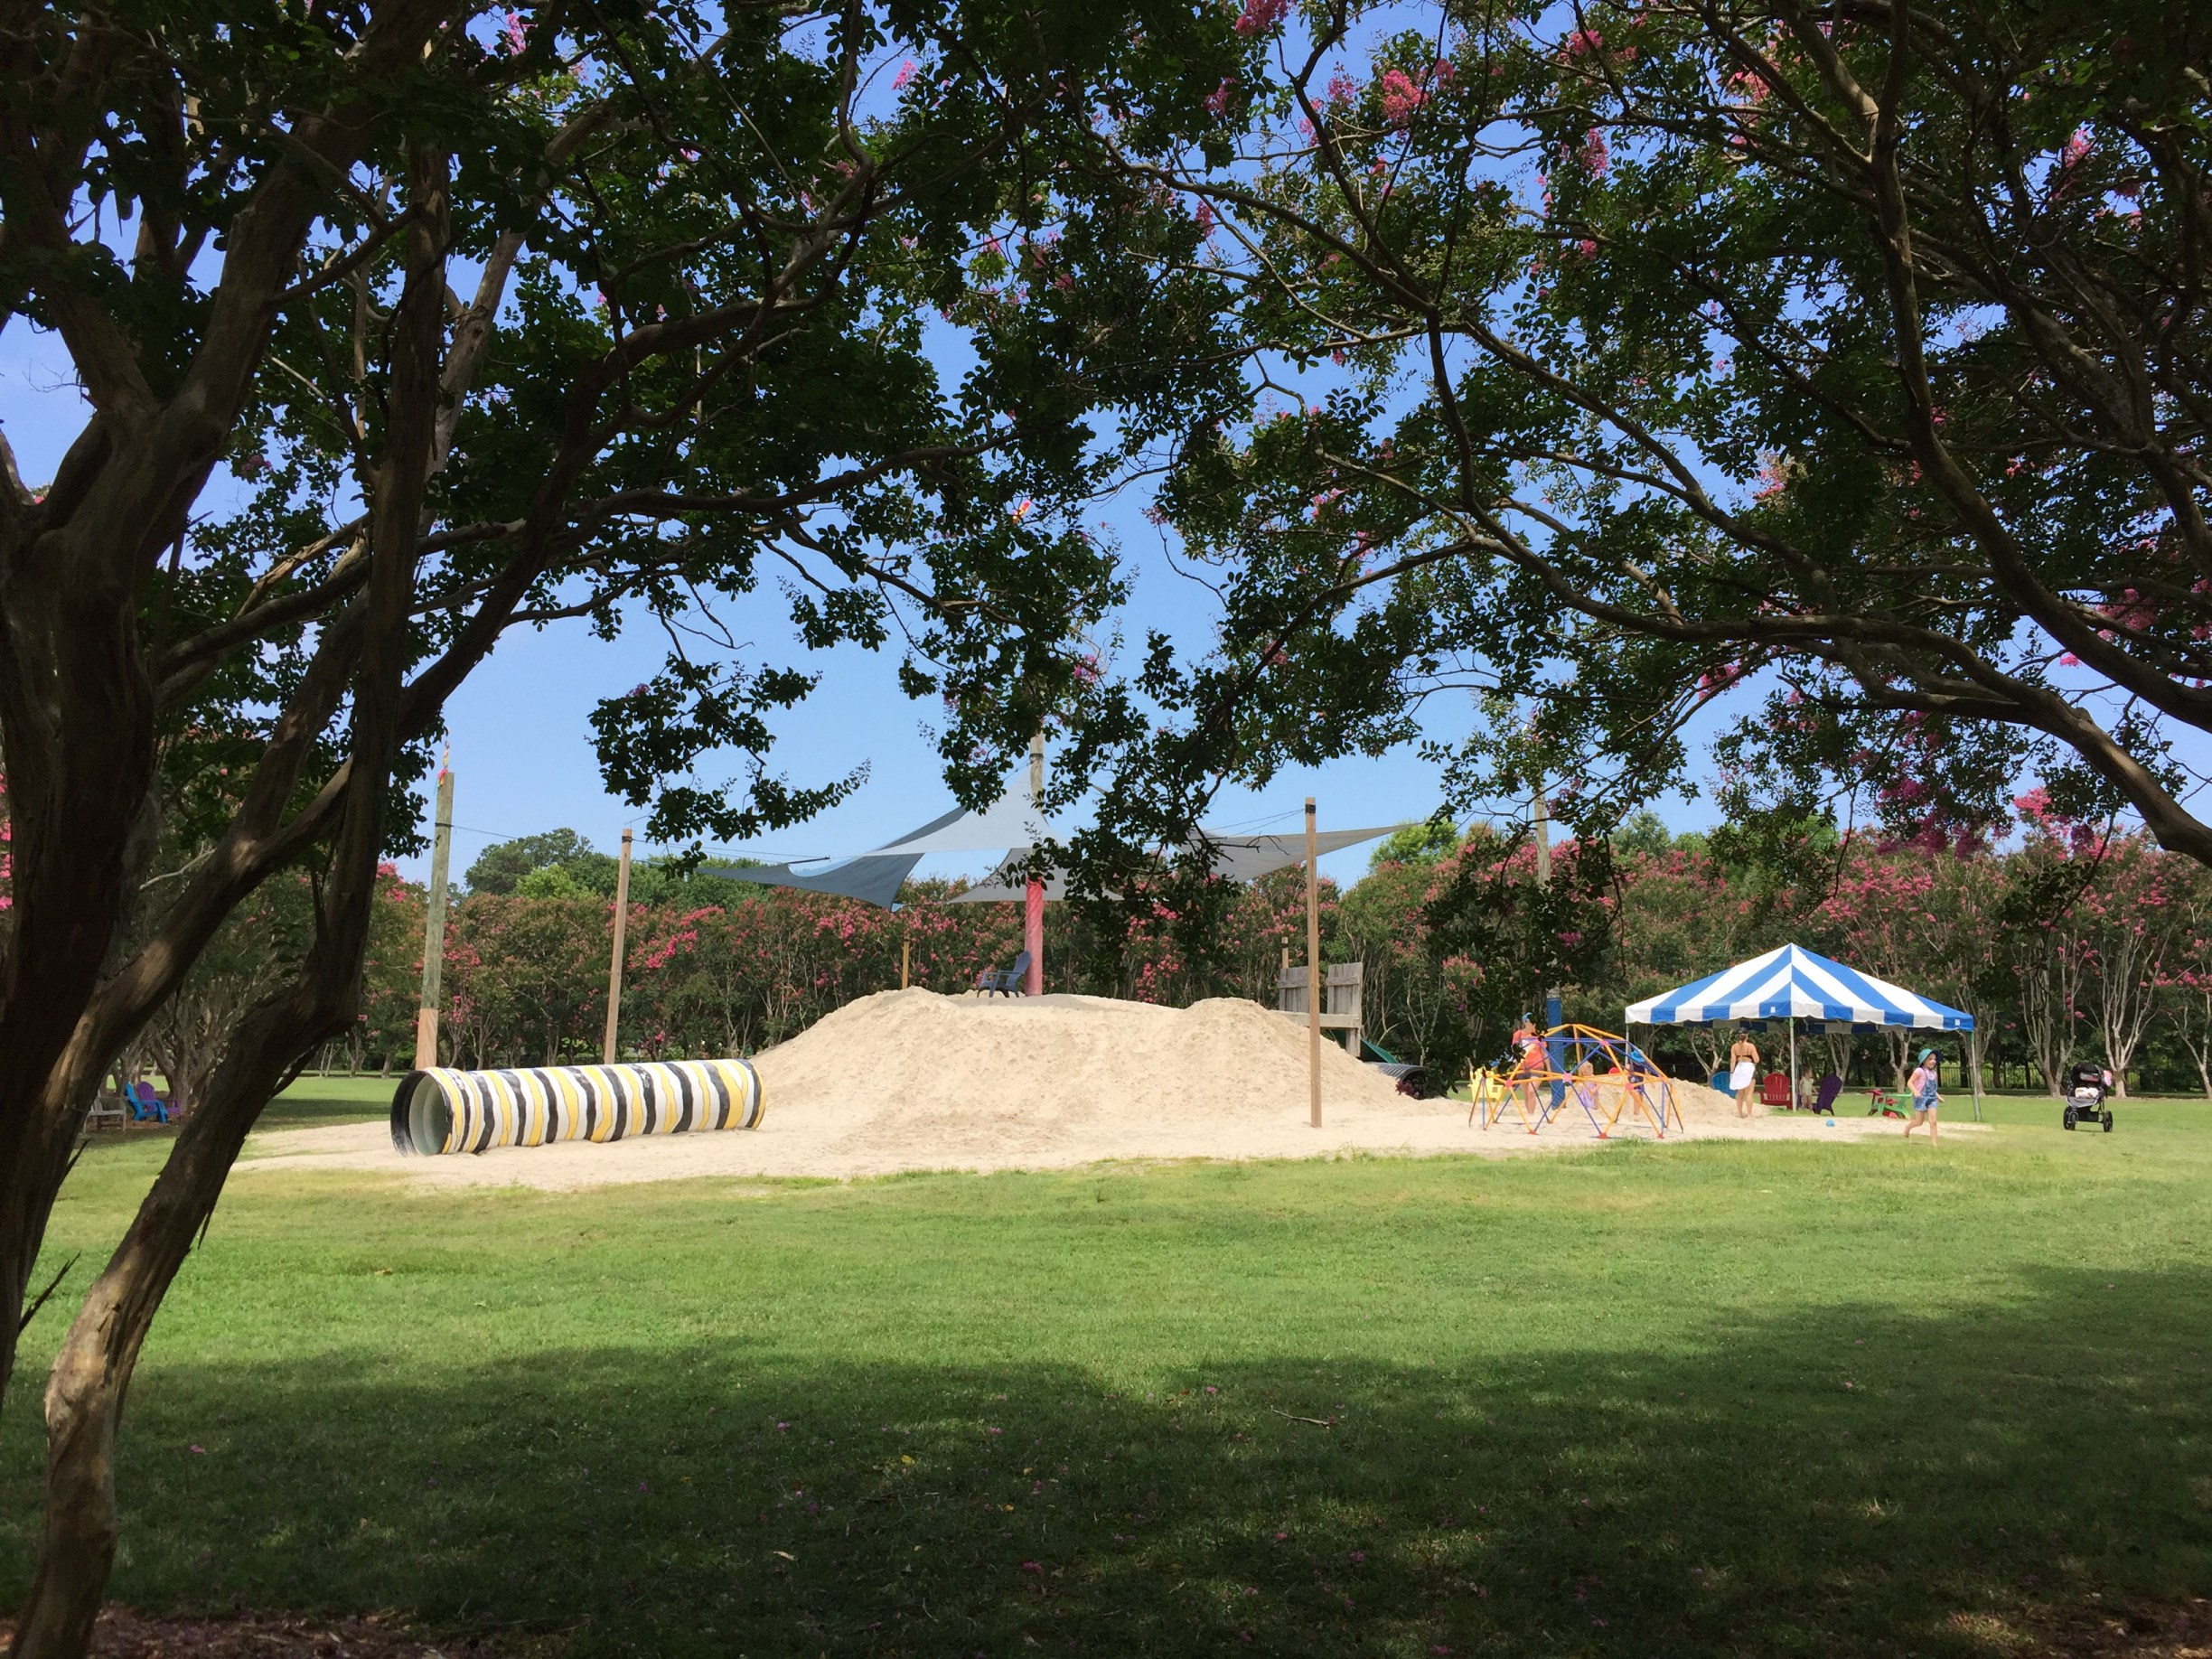 Parents can relax in nearby seating as children enjoy a sandy play area. Photo © 2018 Elaine Mills.